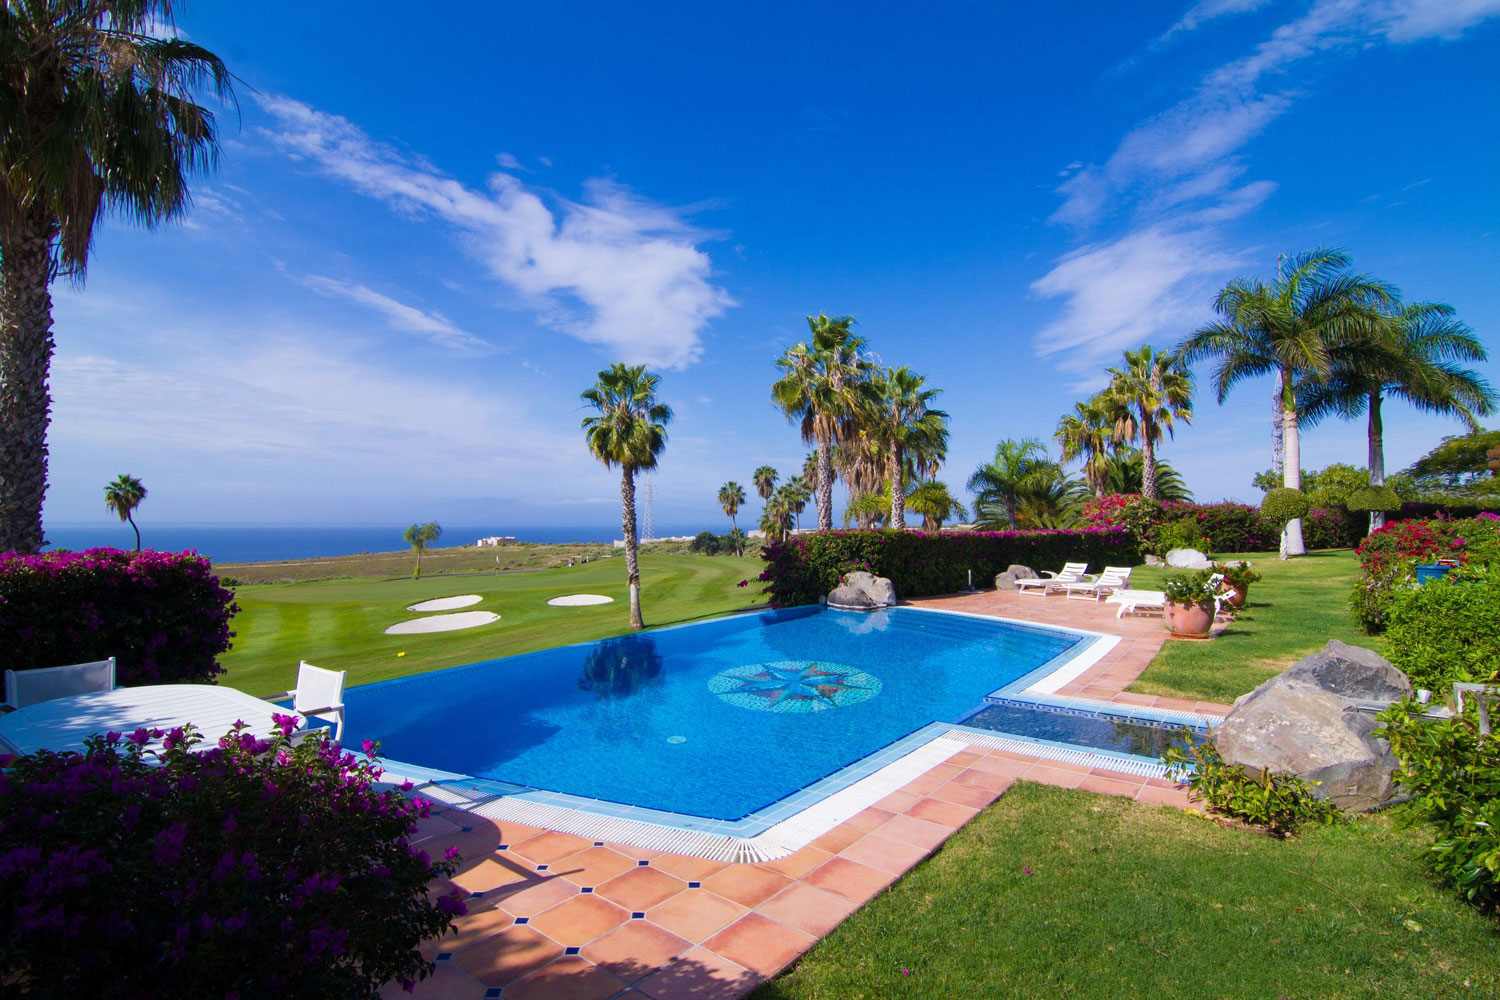 This elegant villa is situated on the premier plot overlooking the greens of the Golf Costa Adeje club in southern Tenerife. In addition to incredible golf and sea views, the property offers luxurious living and an environment of total privacy.